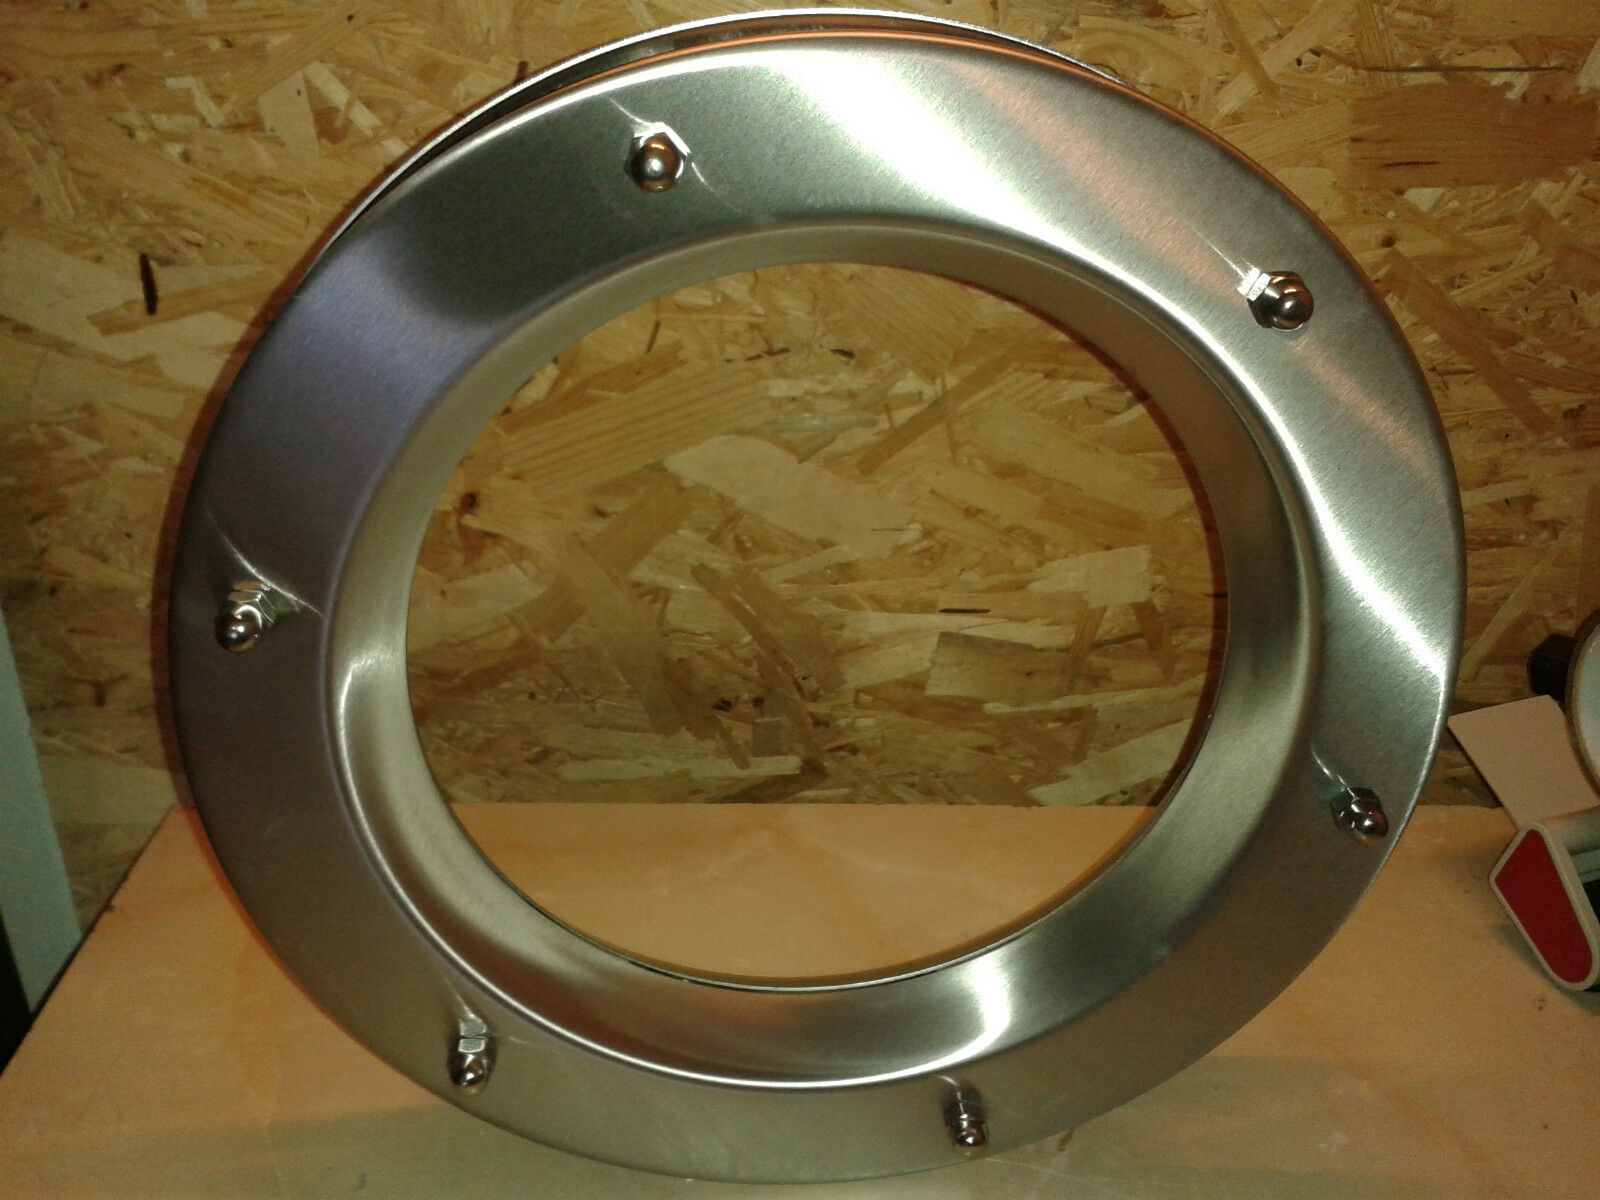 STAINLESS STEEL PORTHOLE VISION PANELS FOR DOORS phi 350 mm.Beautiful. New.